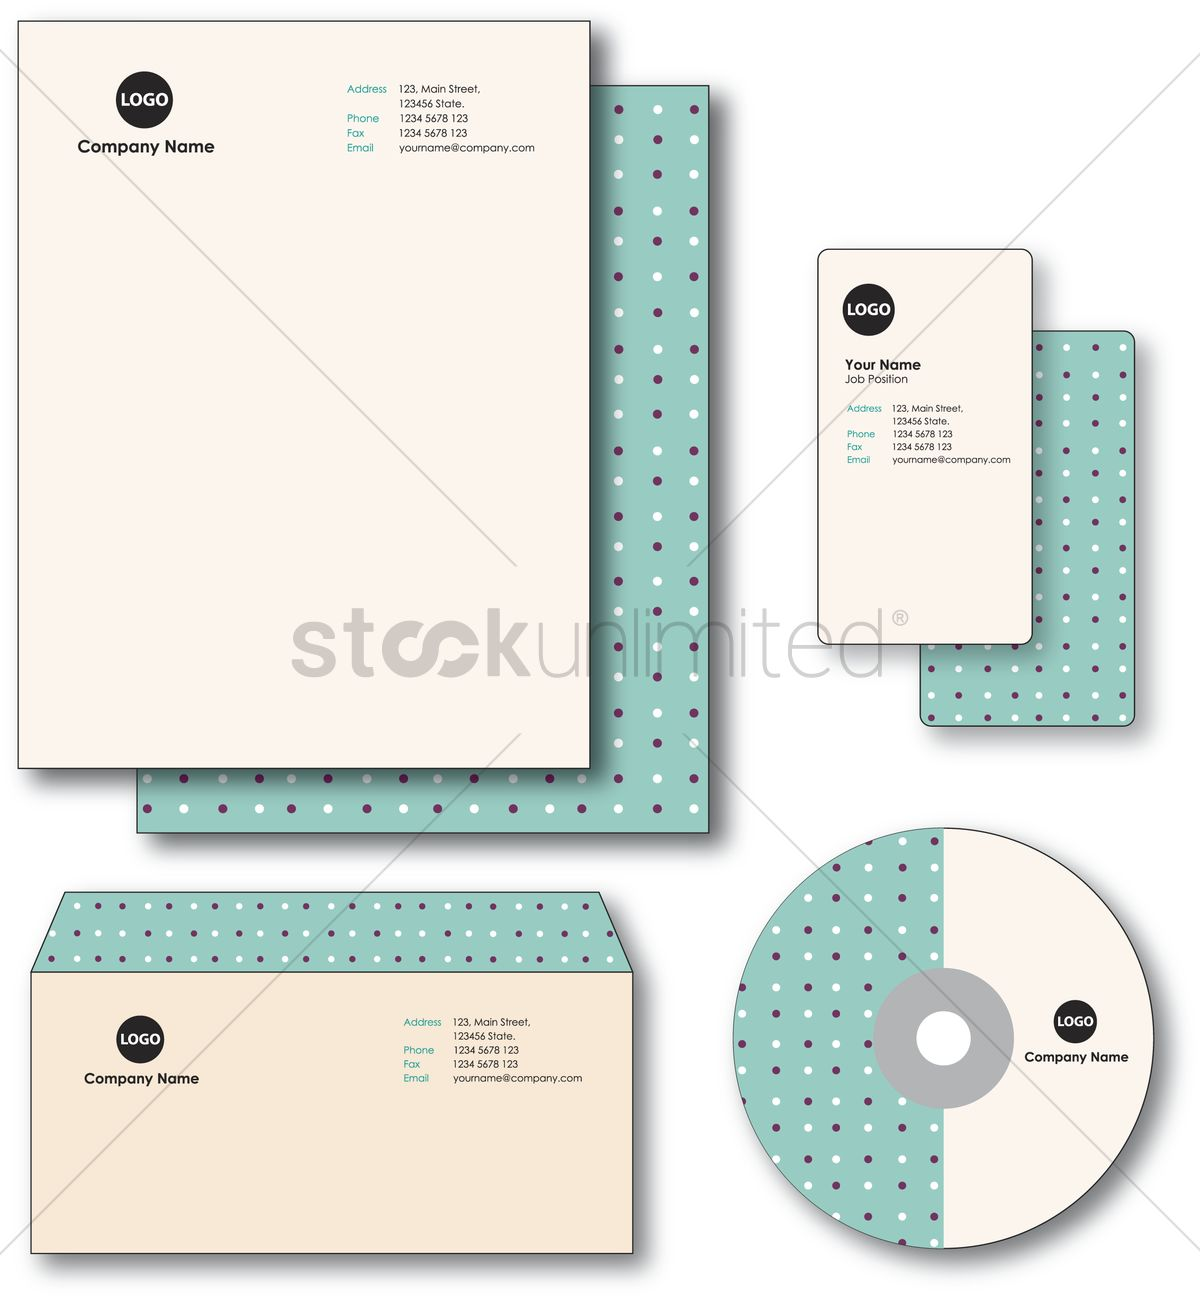 Company paper, envelope, business card and cd Vector Image - 1235440